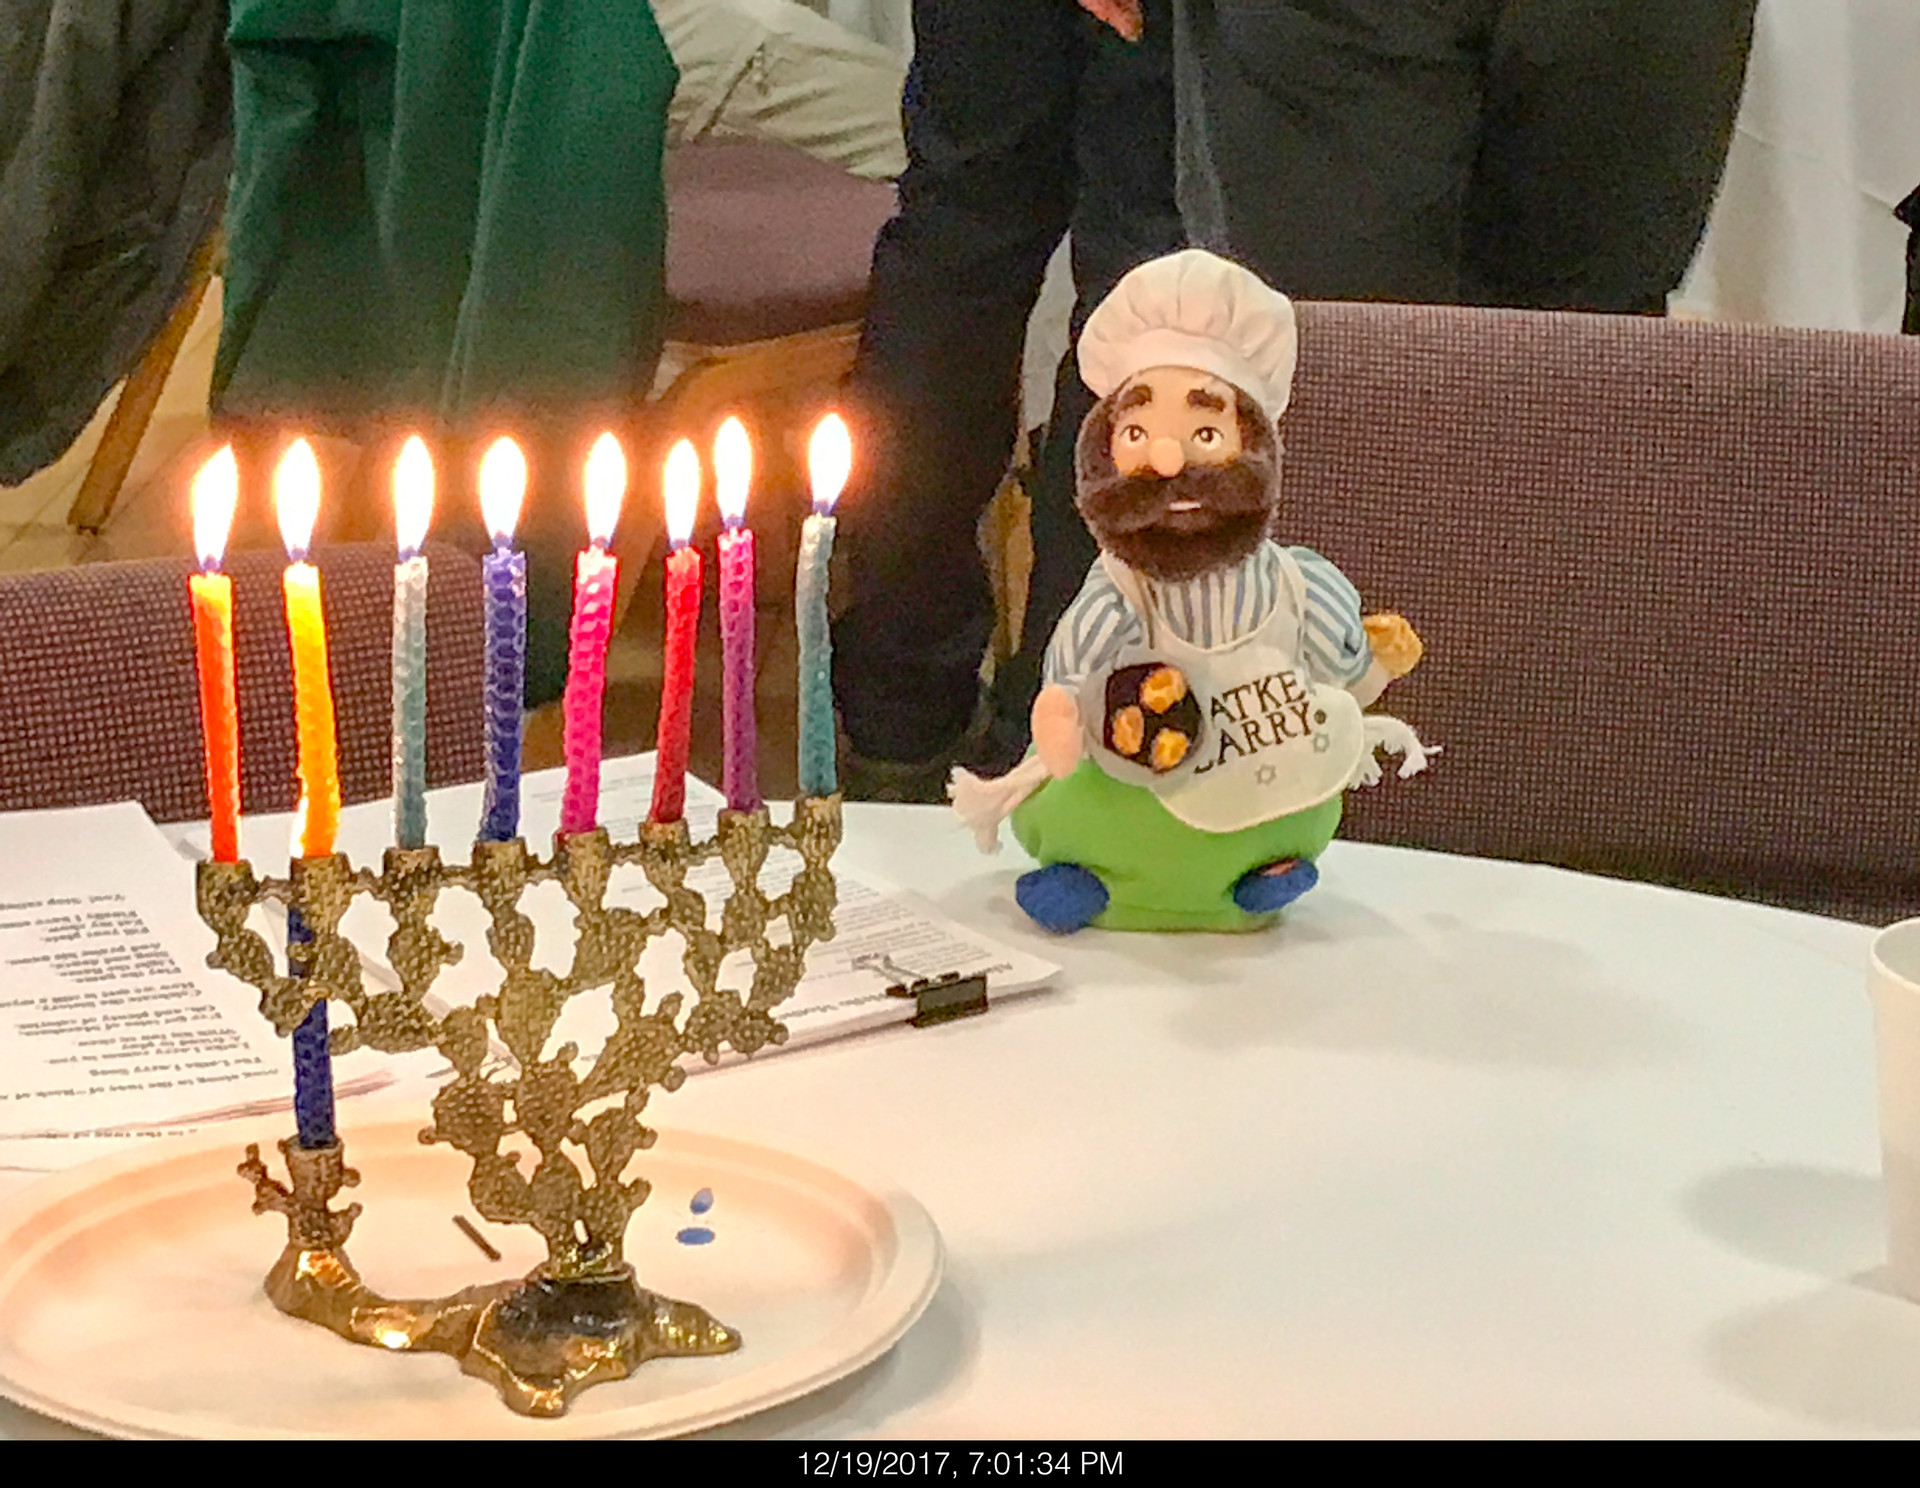 Latke Larry Keeping an Eye on the Candles